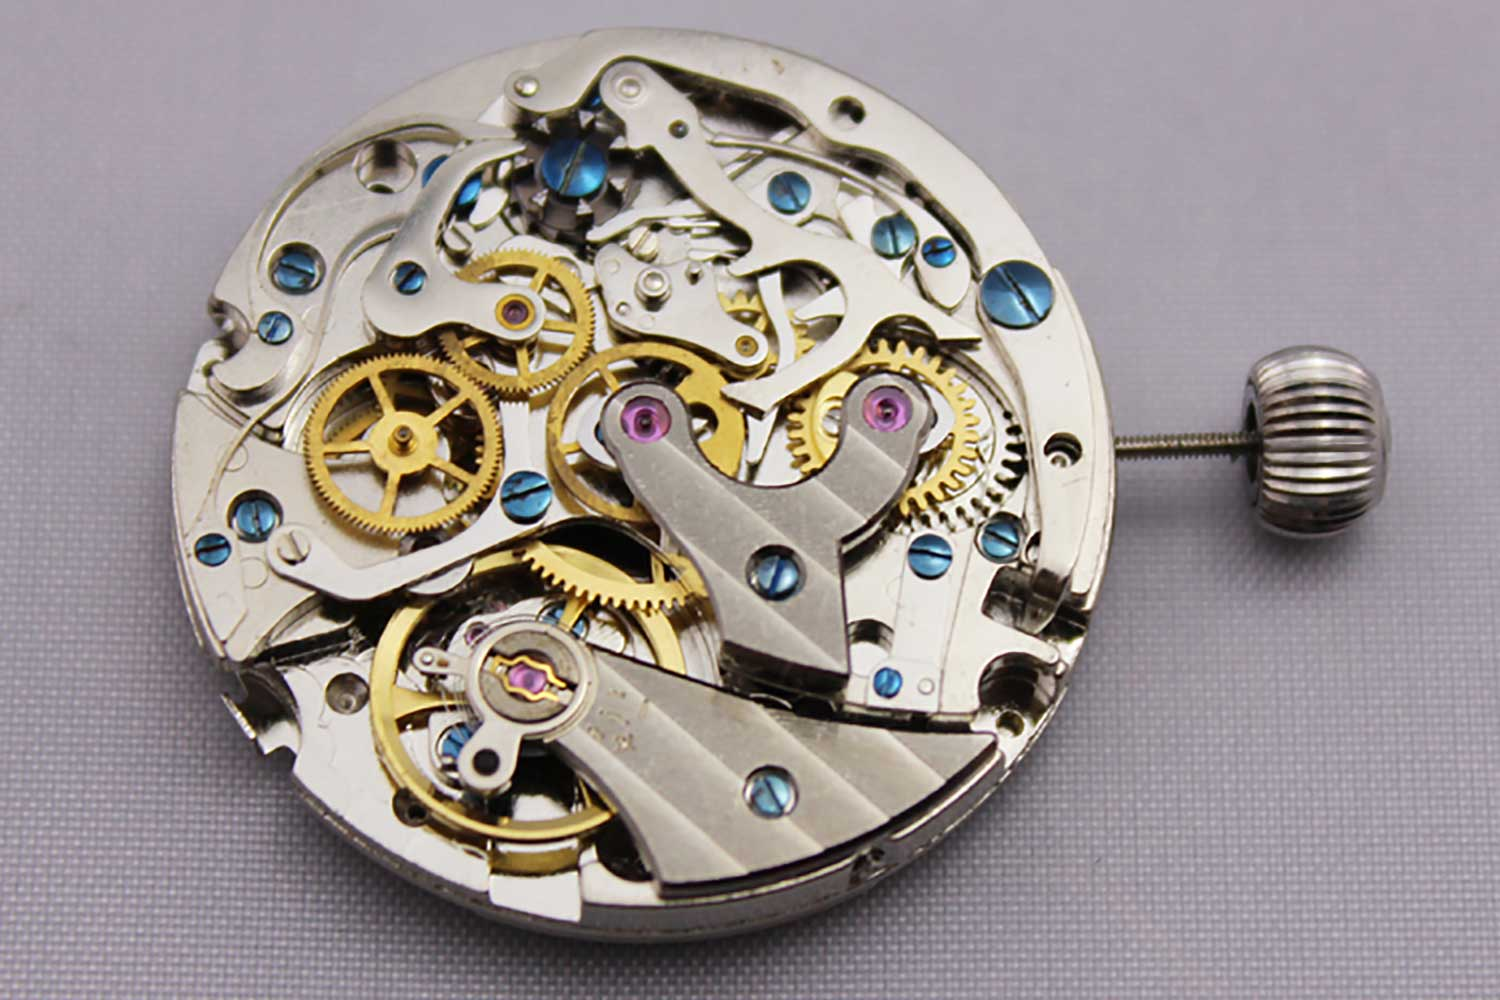 The Seagull ST19 movement that was derived from the Venus 175. (Image: Kamisky Blog)